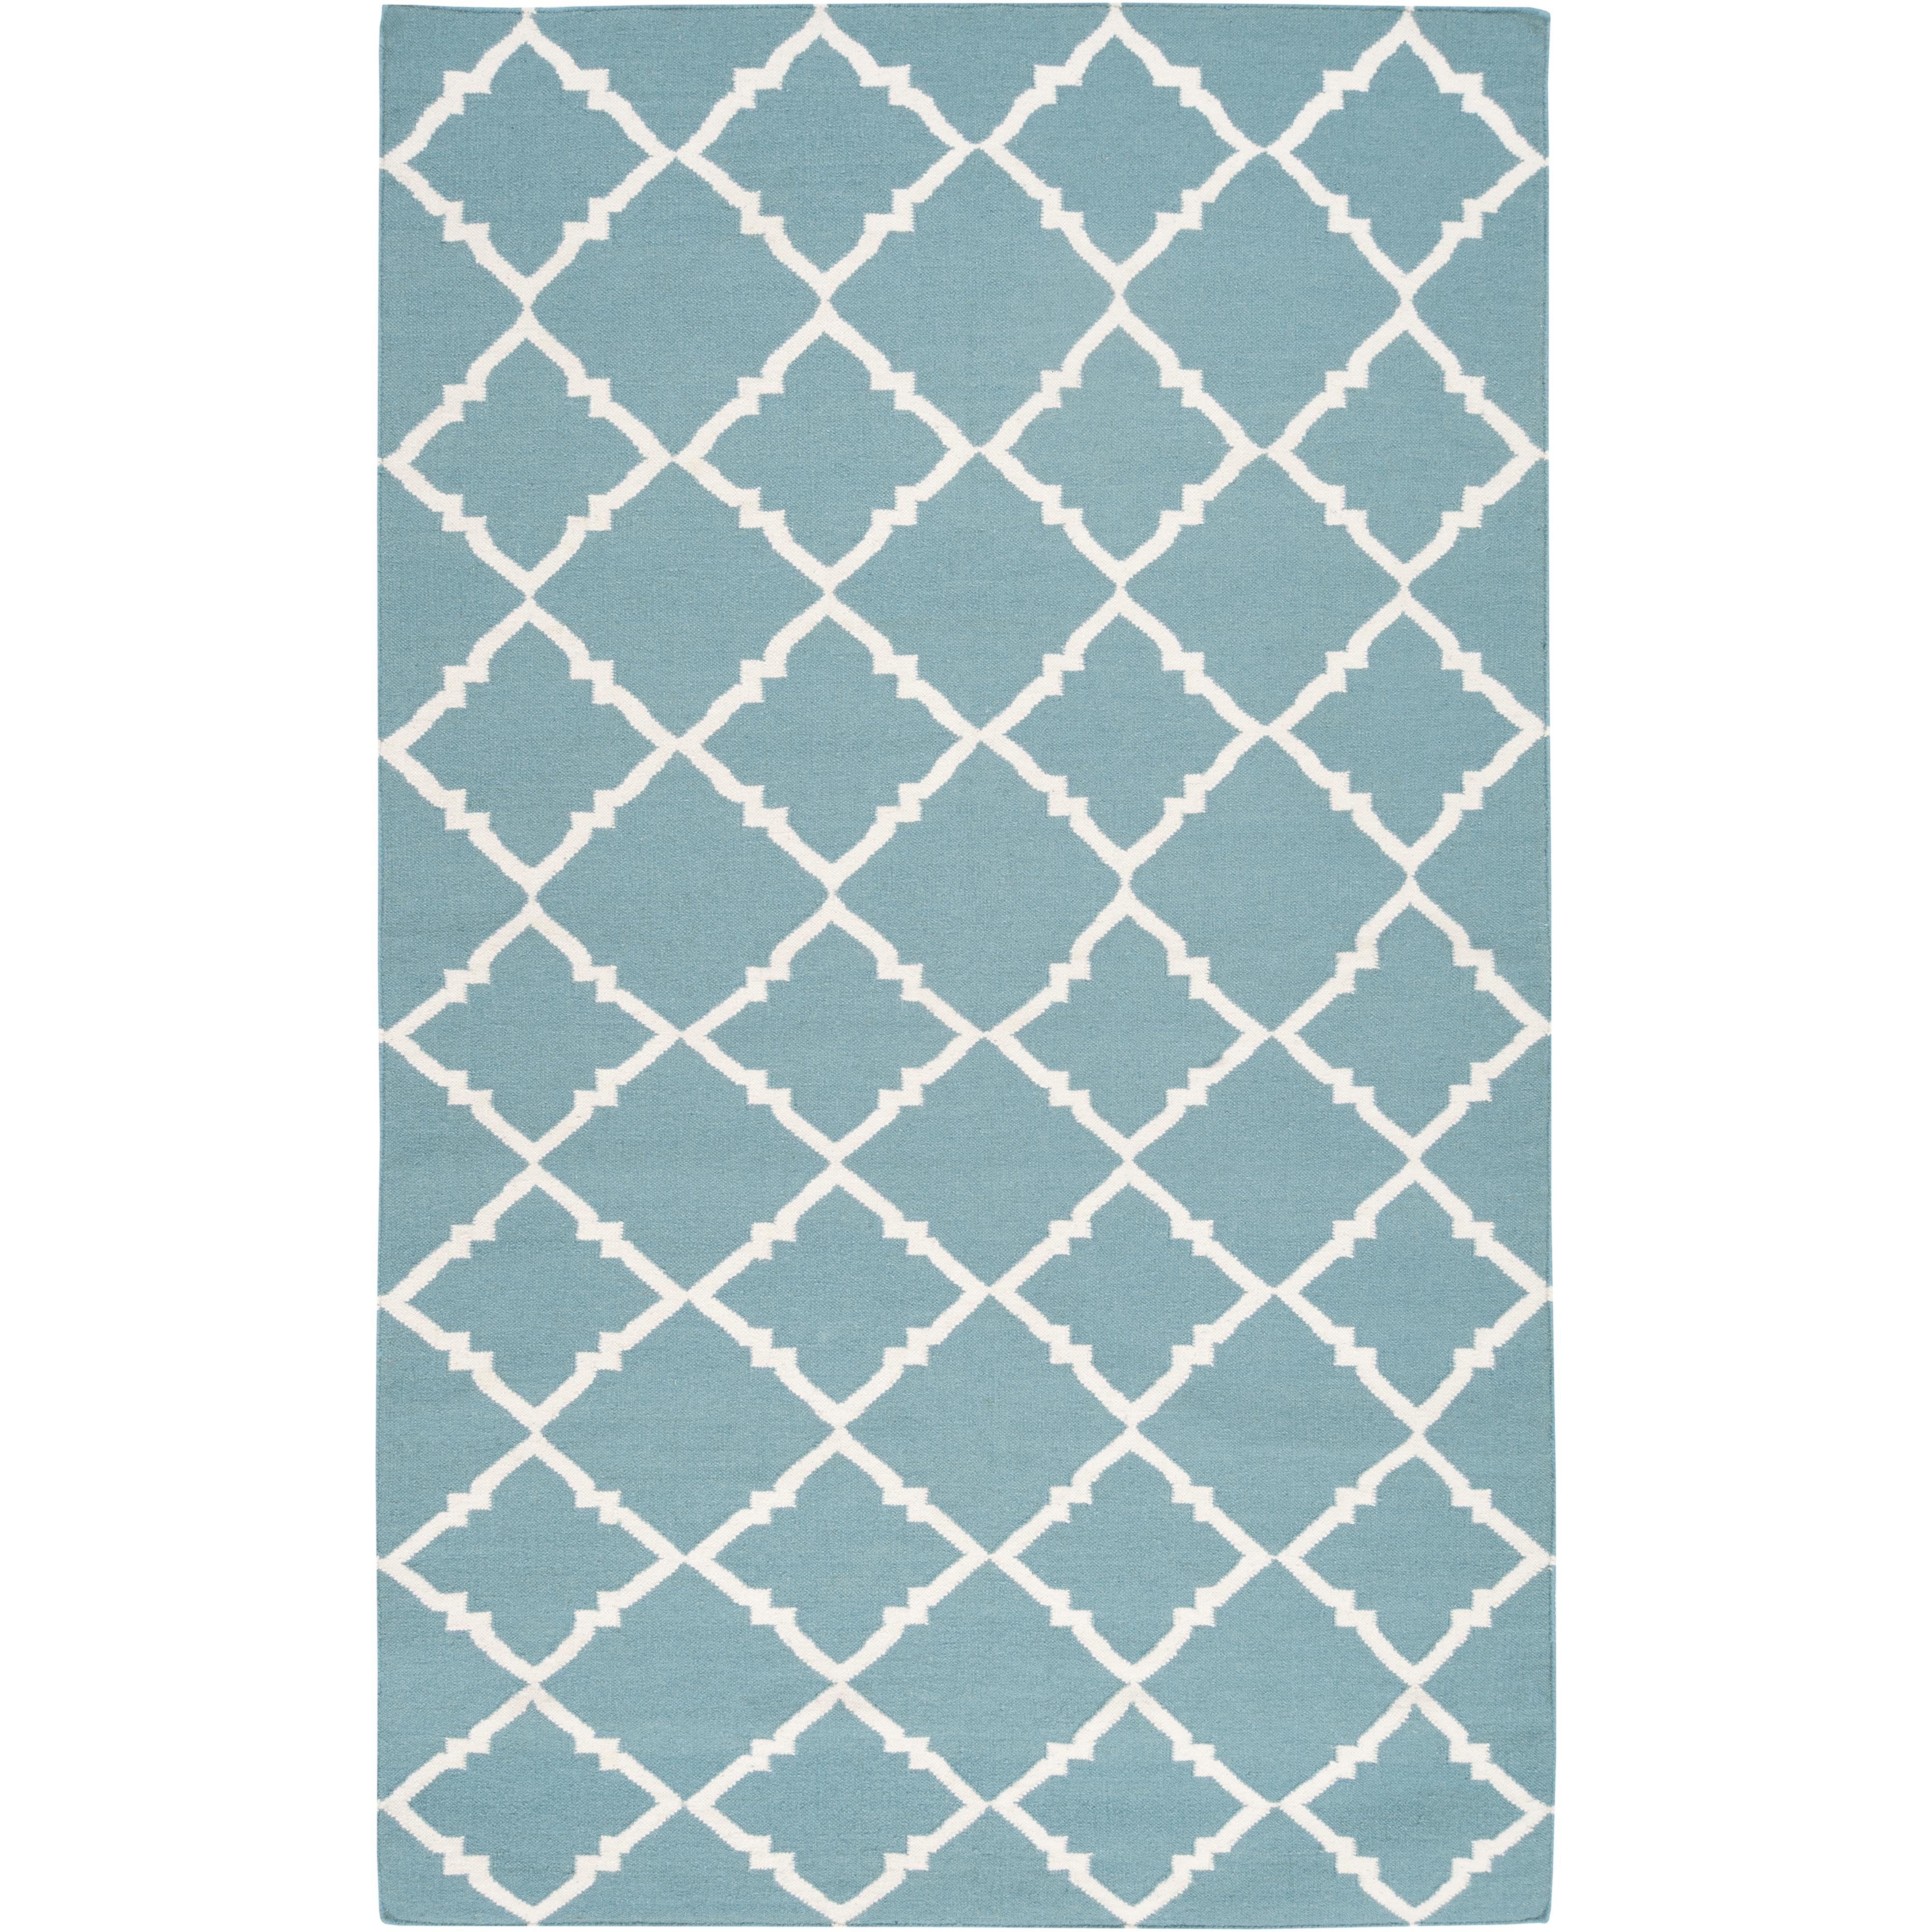 "Surya Rugs Frontier 3'6"" x 5'6"" - Item Number: FT221-3656"